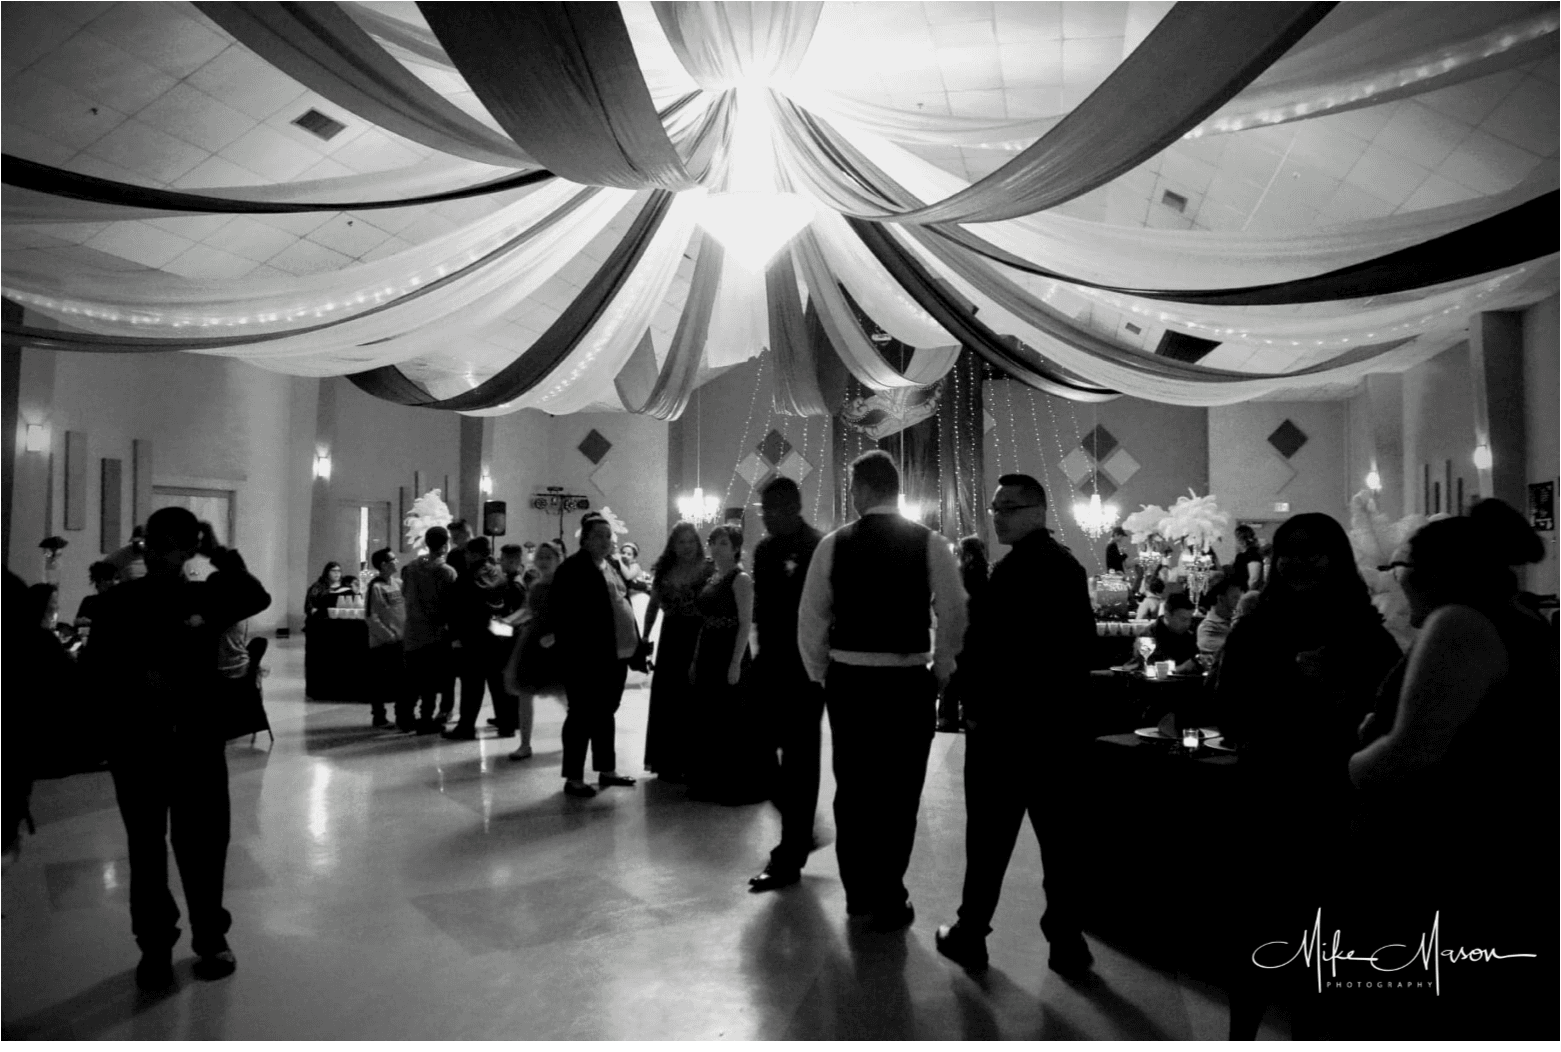 Black and White Party Image